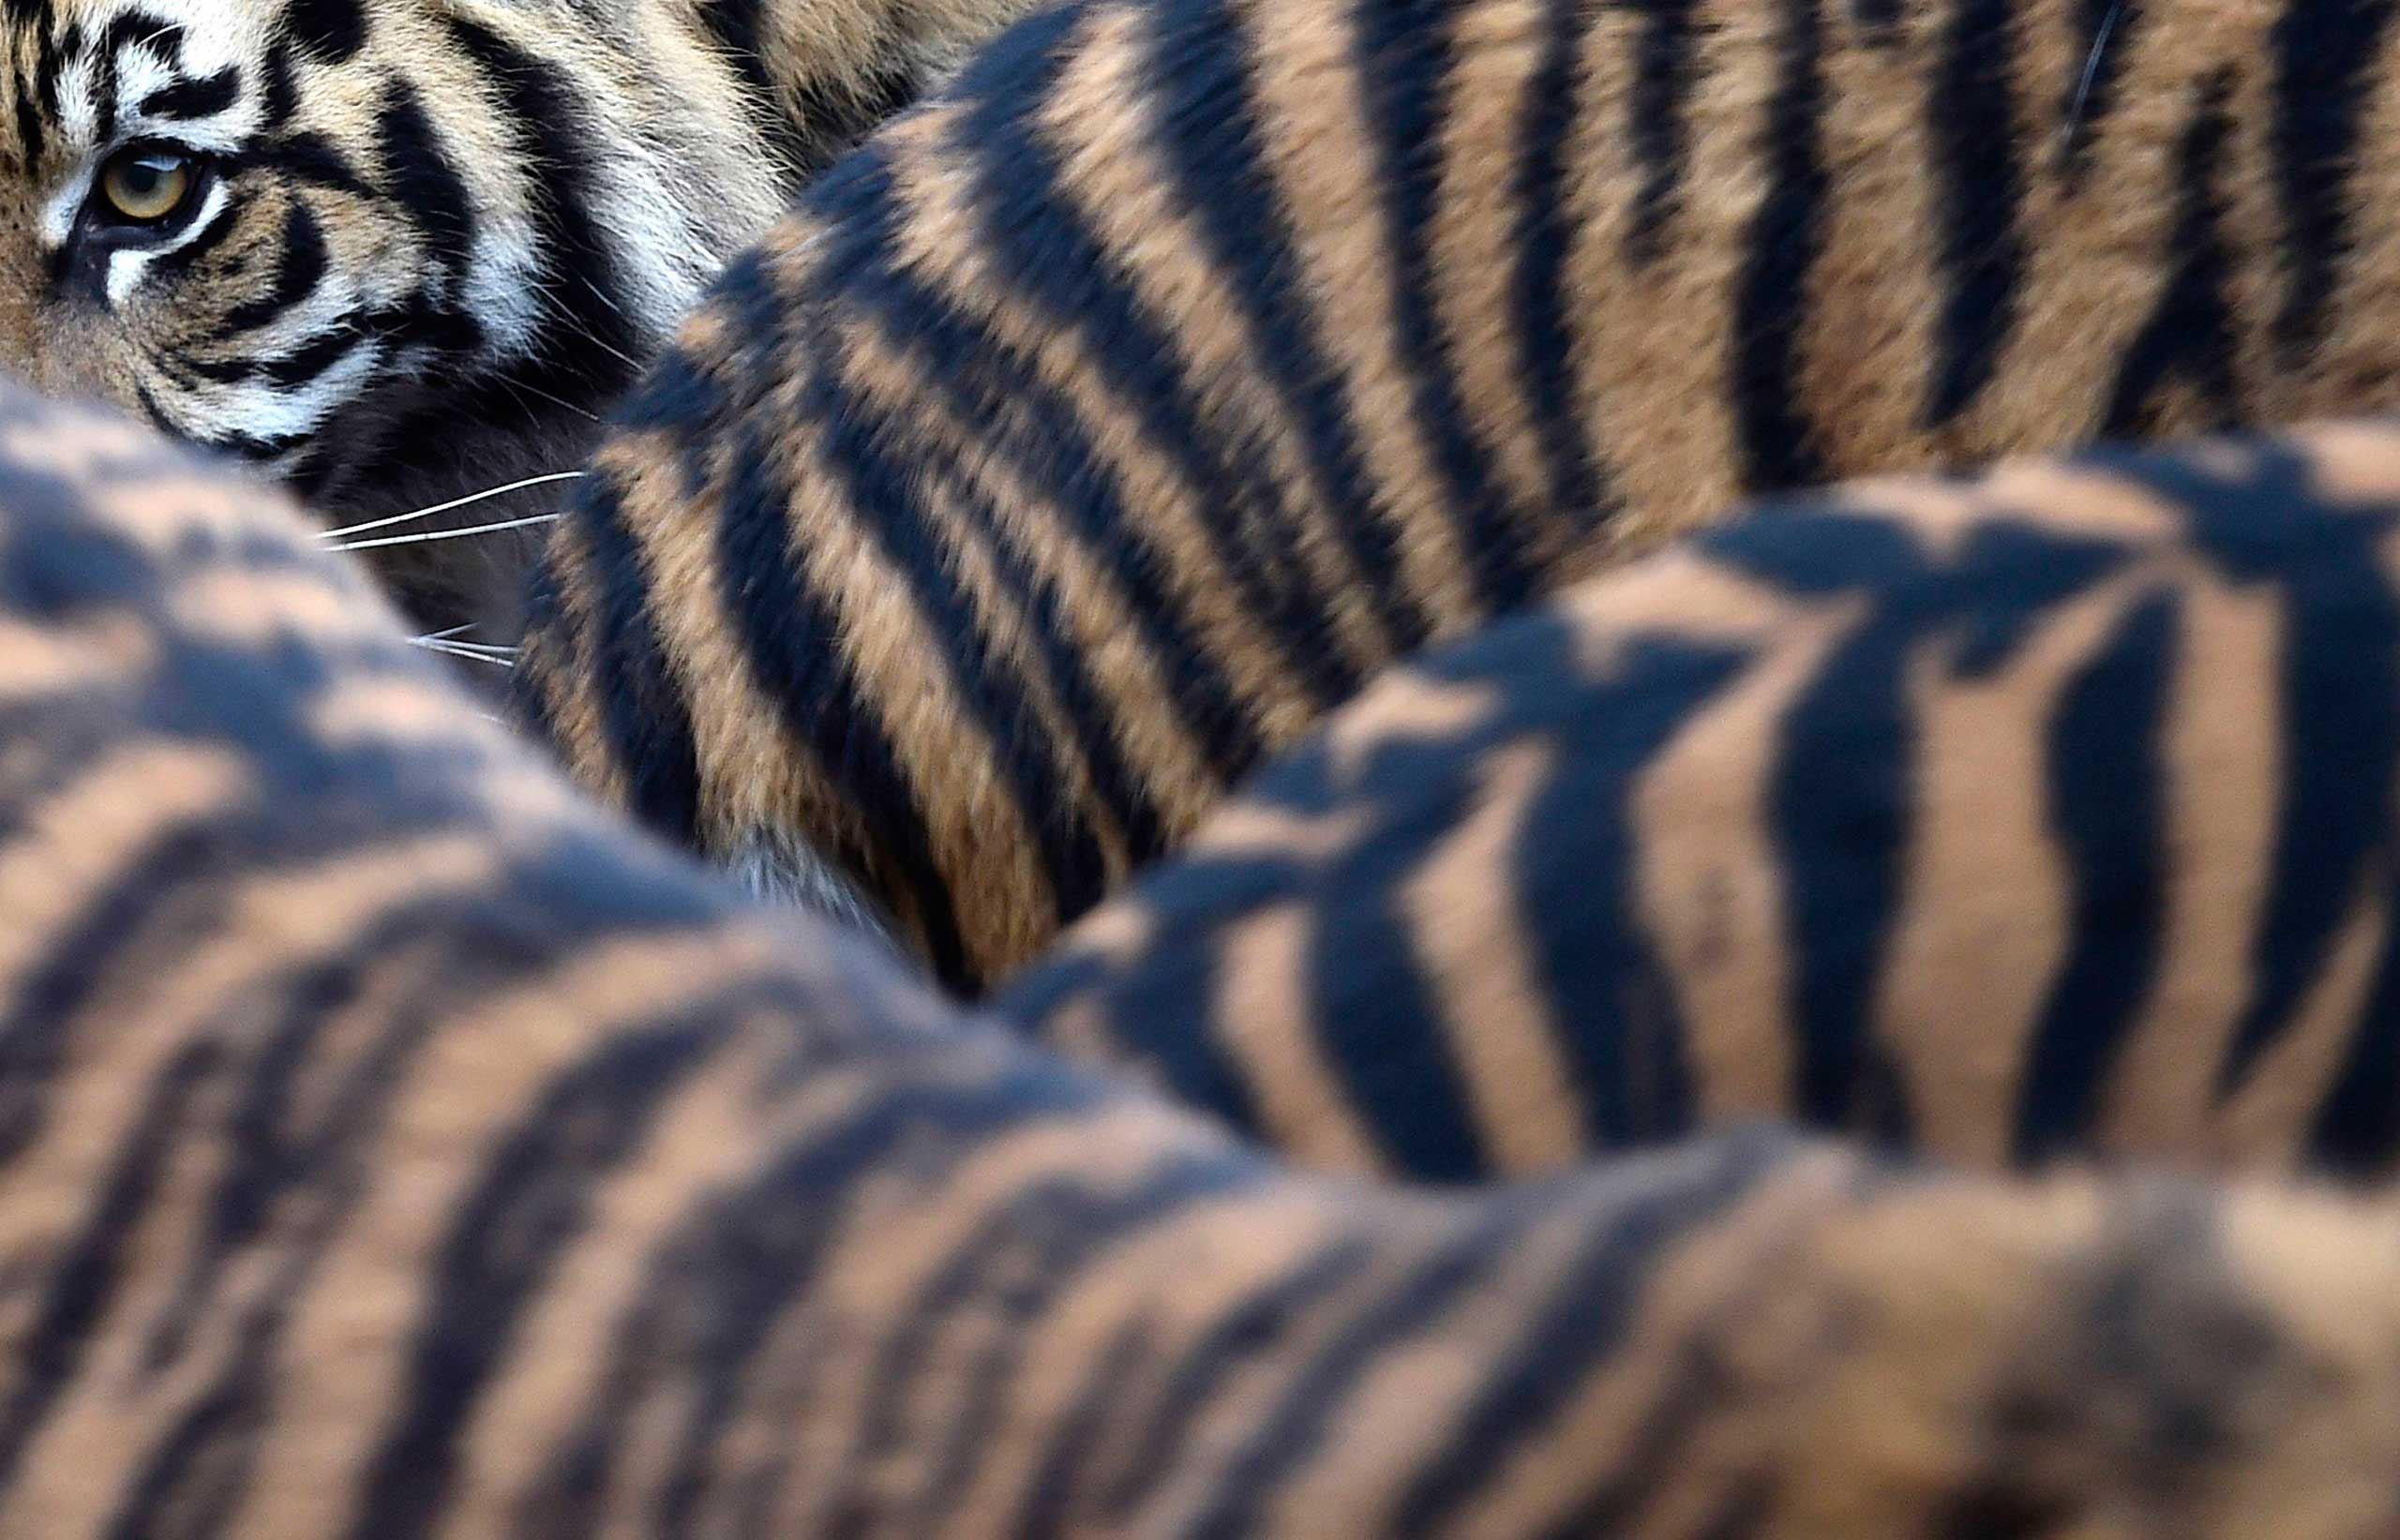 Sumatran tiger cubs and their parents walk around their enclosure at London Zoo in London, Jan. 5, 2015. during the annual stock take and animal count, which is a requirement of London Zoo's license.